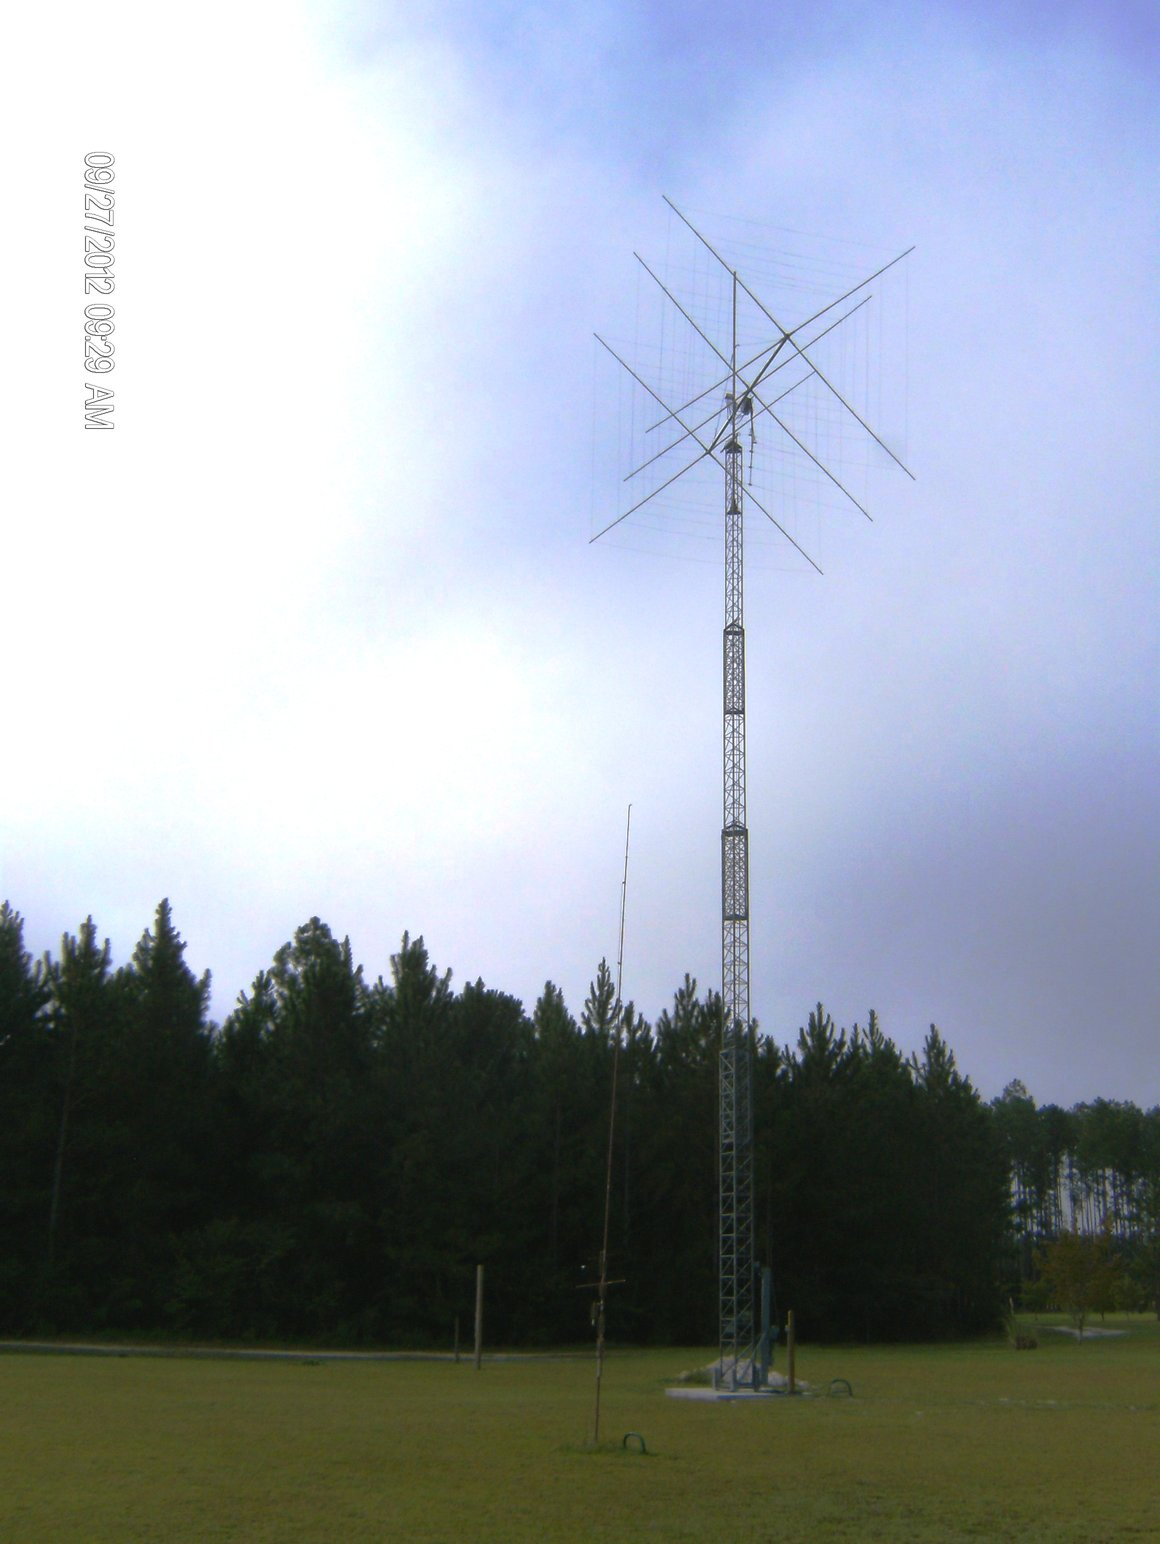 Tower design for radio amateur